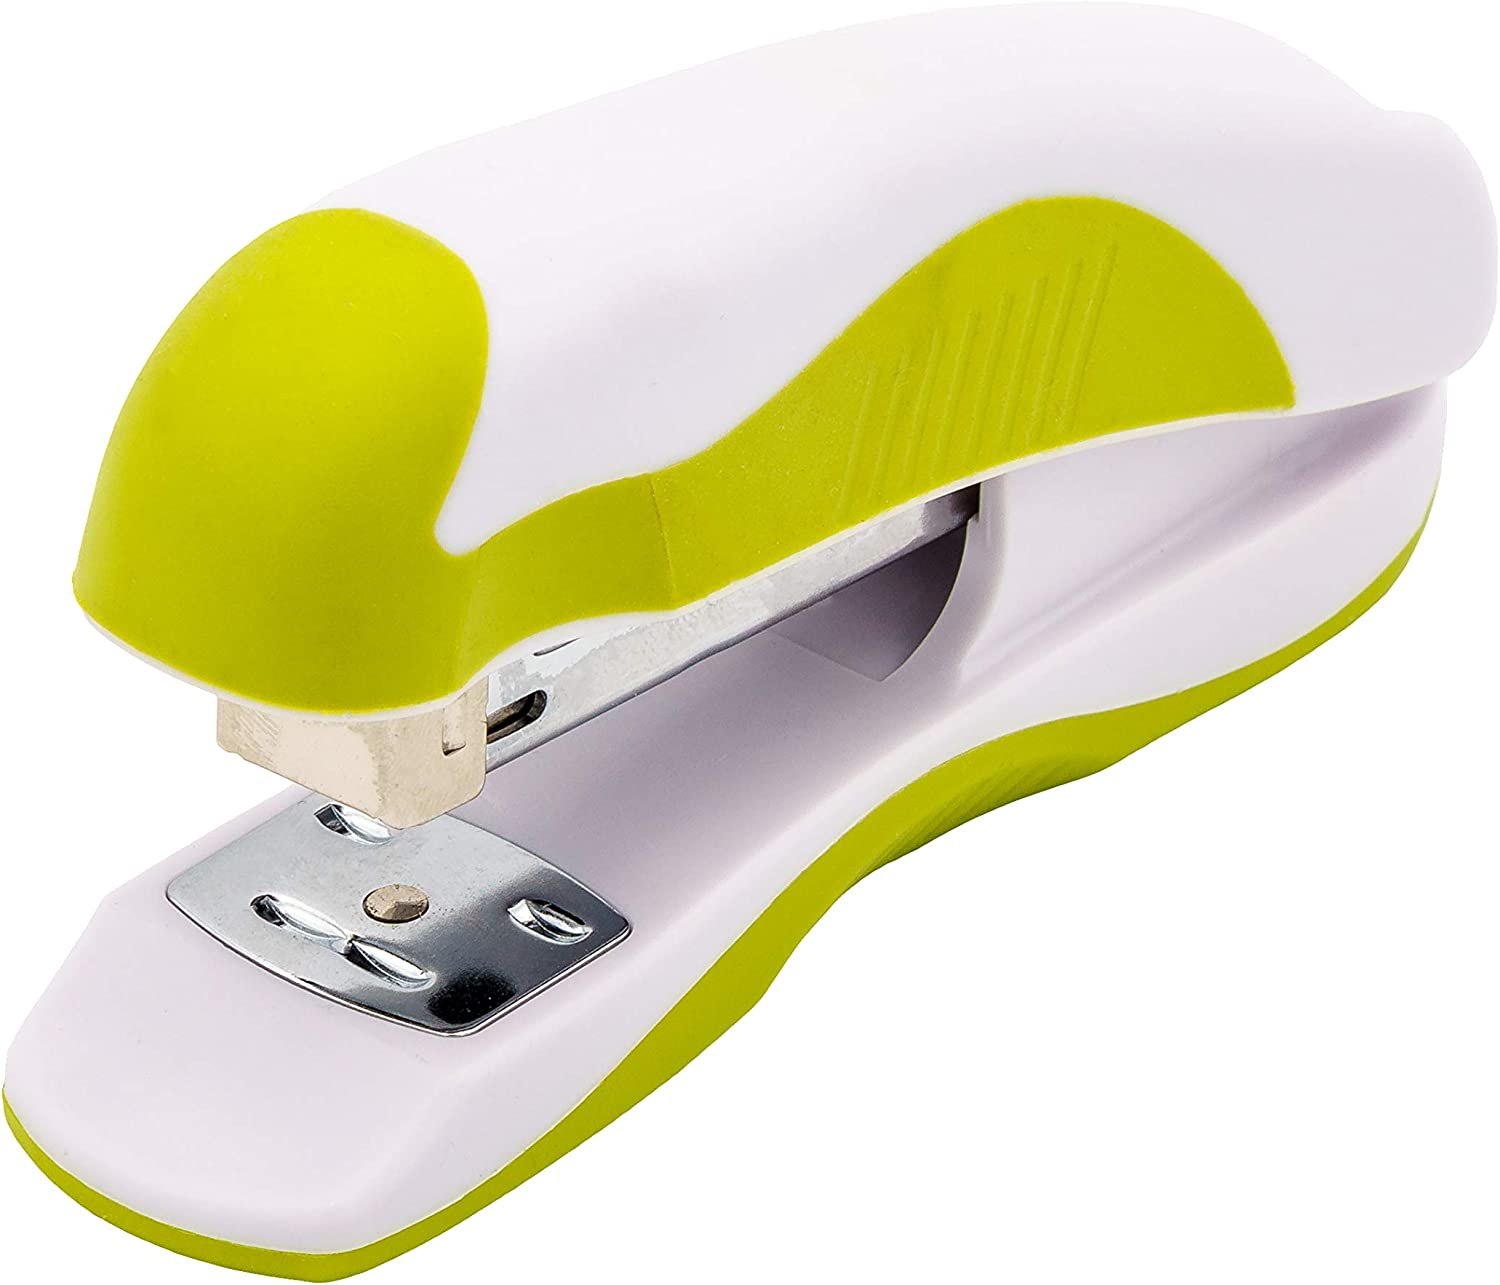 TSI 49030-6 Wave Stapler for up to 20 Sheets Kiwi Colour